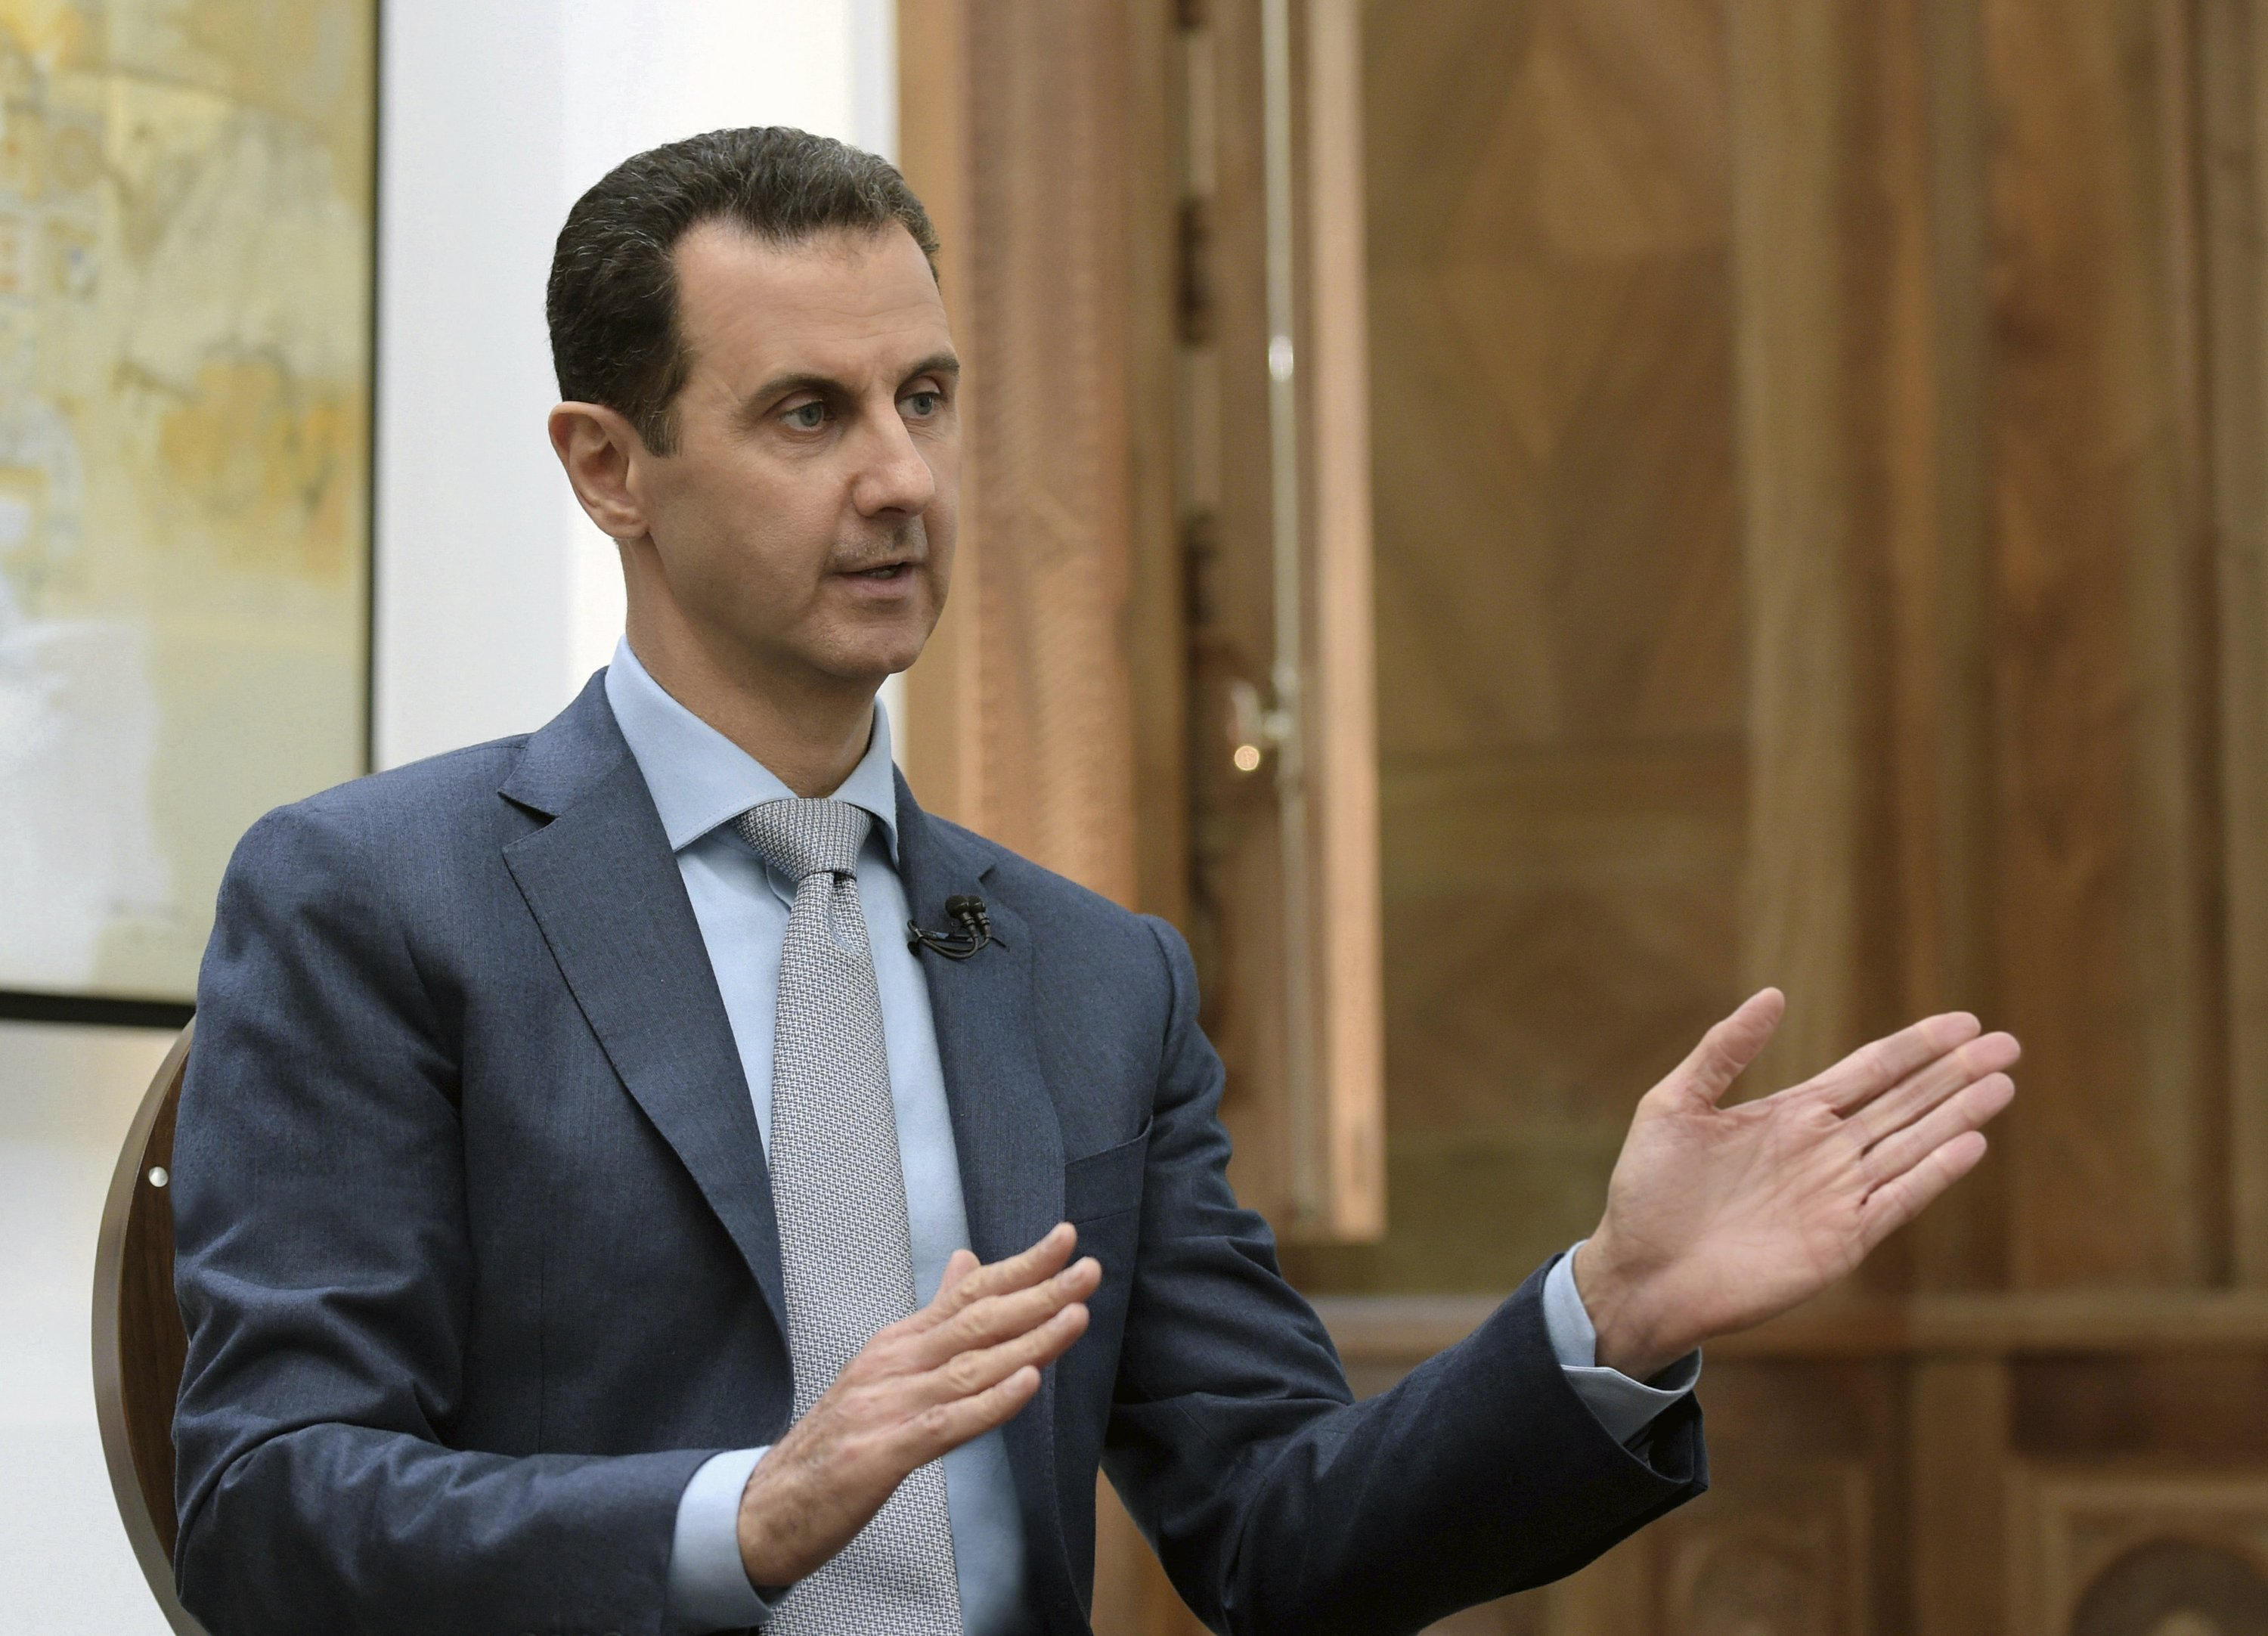 Assad says US troops welcome in Syria to fight 'terrorism'